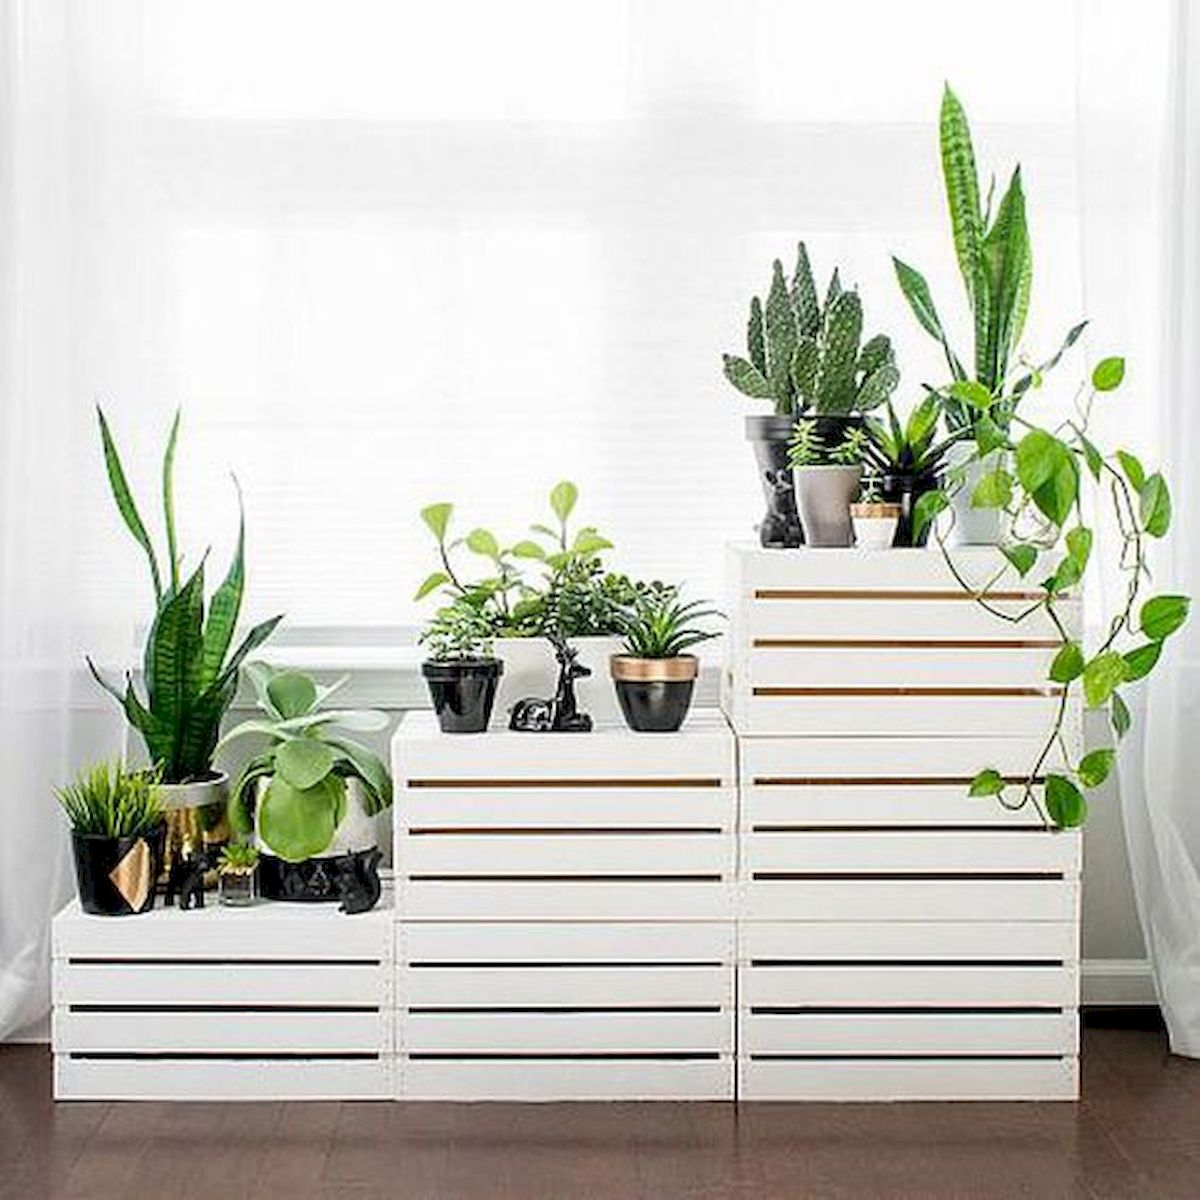 70 Awesome Small Garden Ideas for Apartment (6)